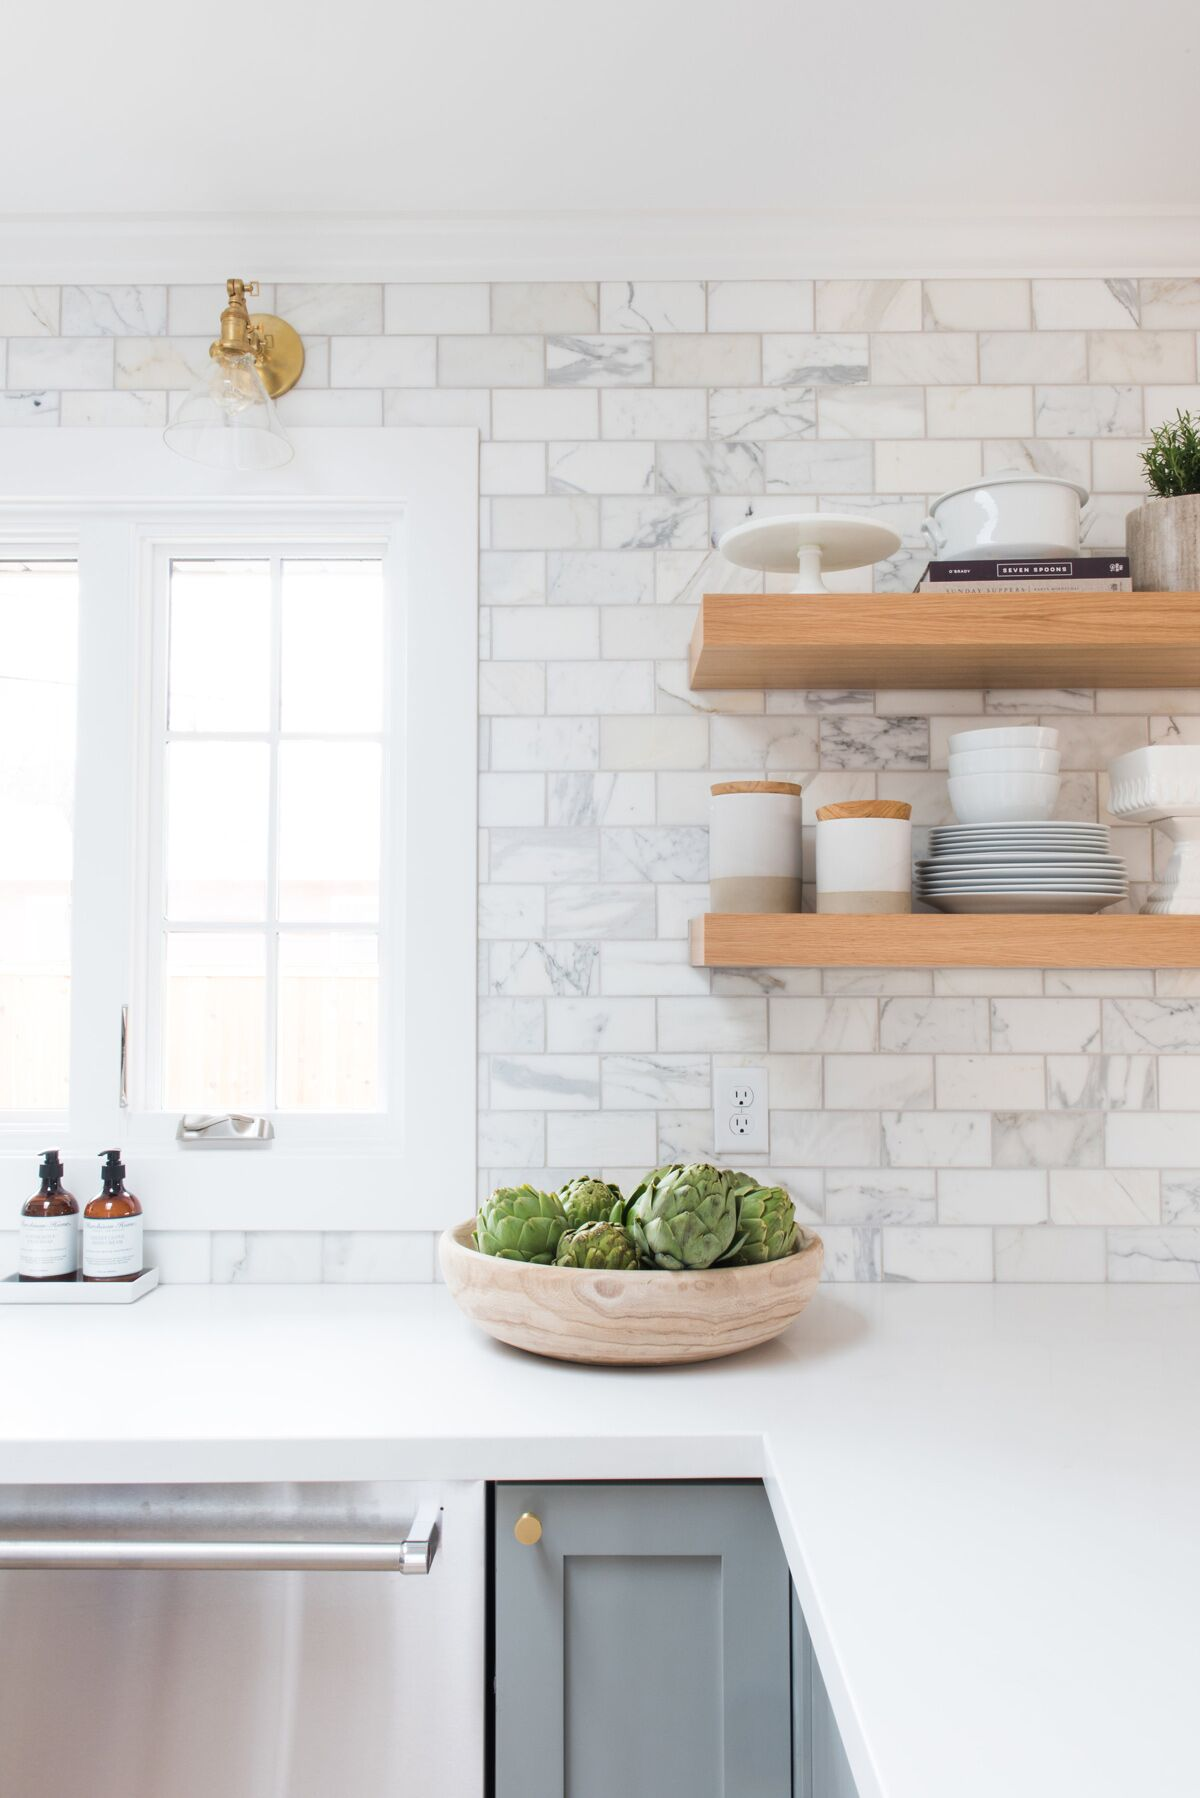 20 kitchen backsplash ideas that totally steal the show homelovr simple marble subway tile backsplash dailygadgetfo Choice Image